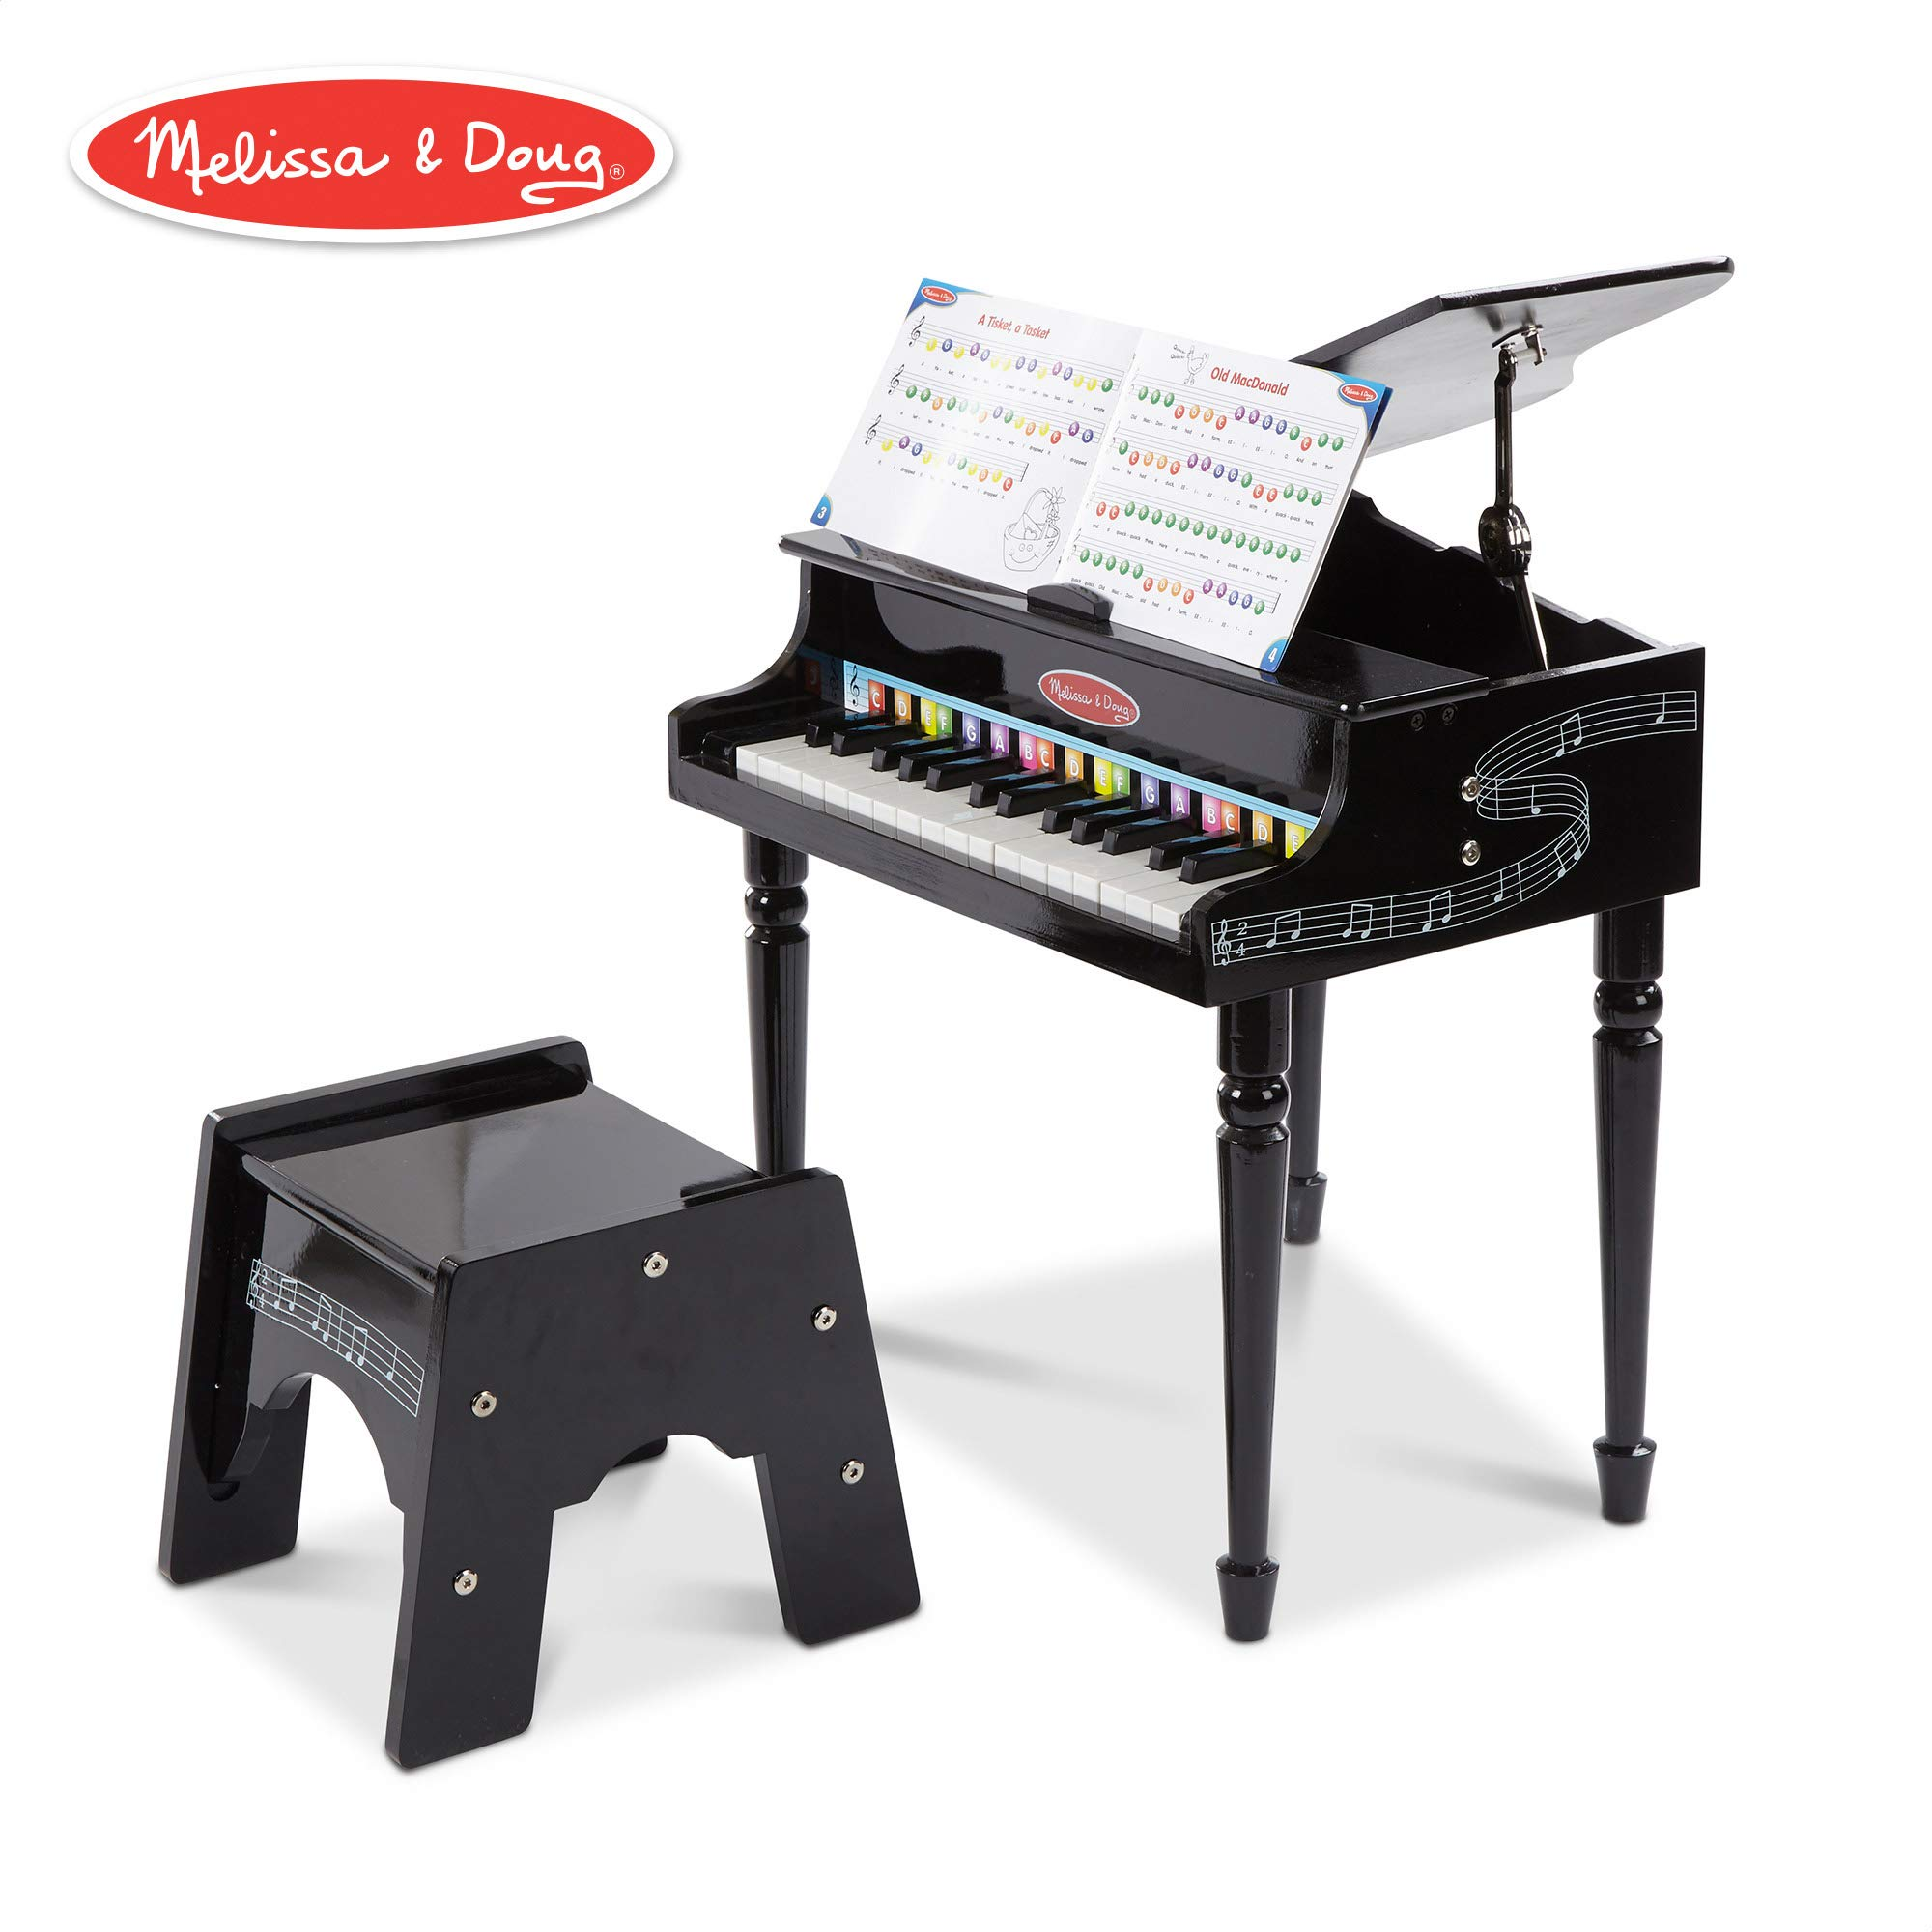 Melissa & Doug Learn-to-Play Classic Grand Piano (Mini Keyboard with 30 Hand-Tuned Keys, Non-Tipping Bench, Materials, 23.65'' H x 21.4'' W x 10.05'' L) by Melissa & Doug